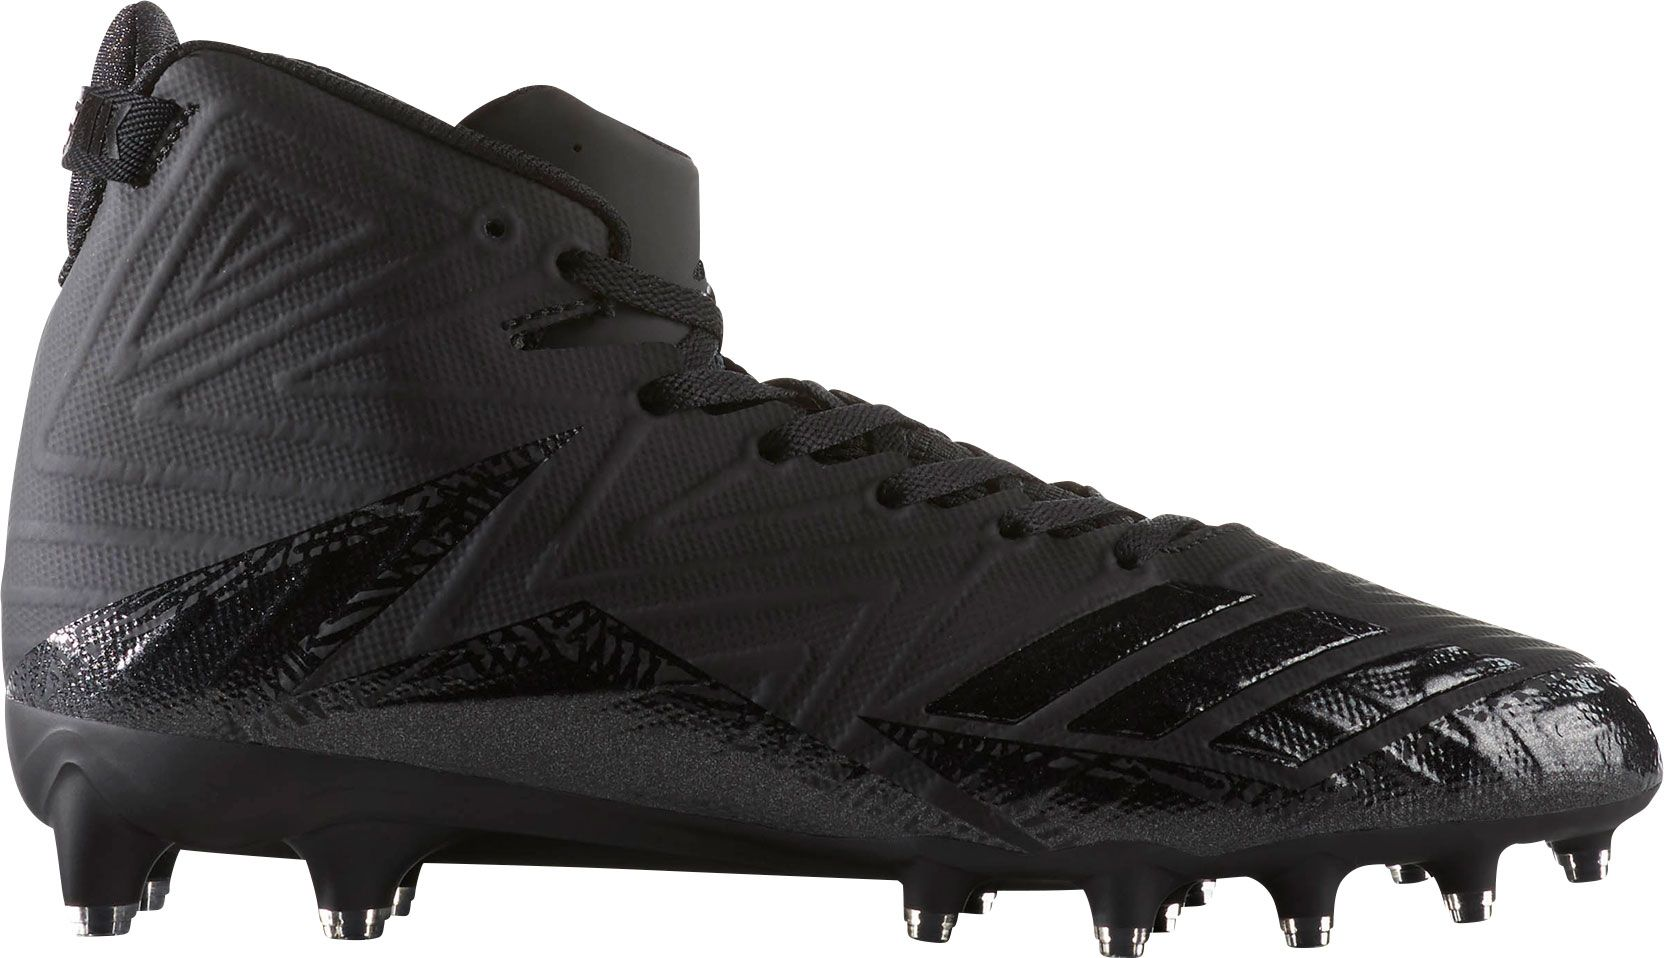 cheaper 637fe 1db69 adidas Mens Freak X Carbon Mid Football Cleats DICKS Sporting Goods new